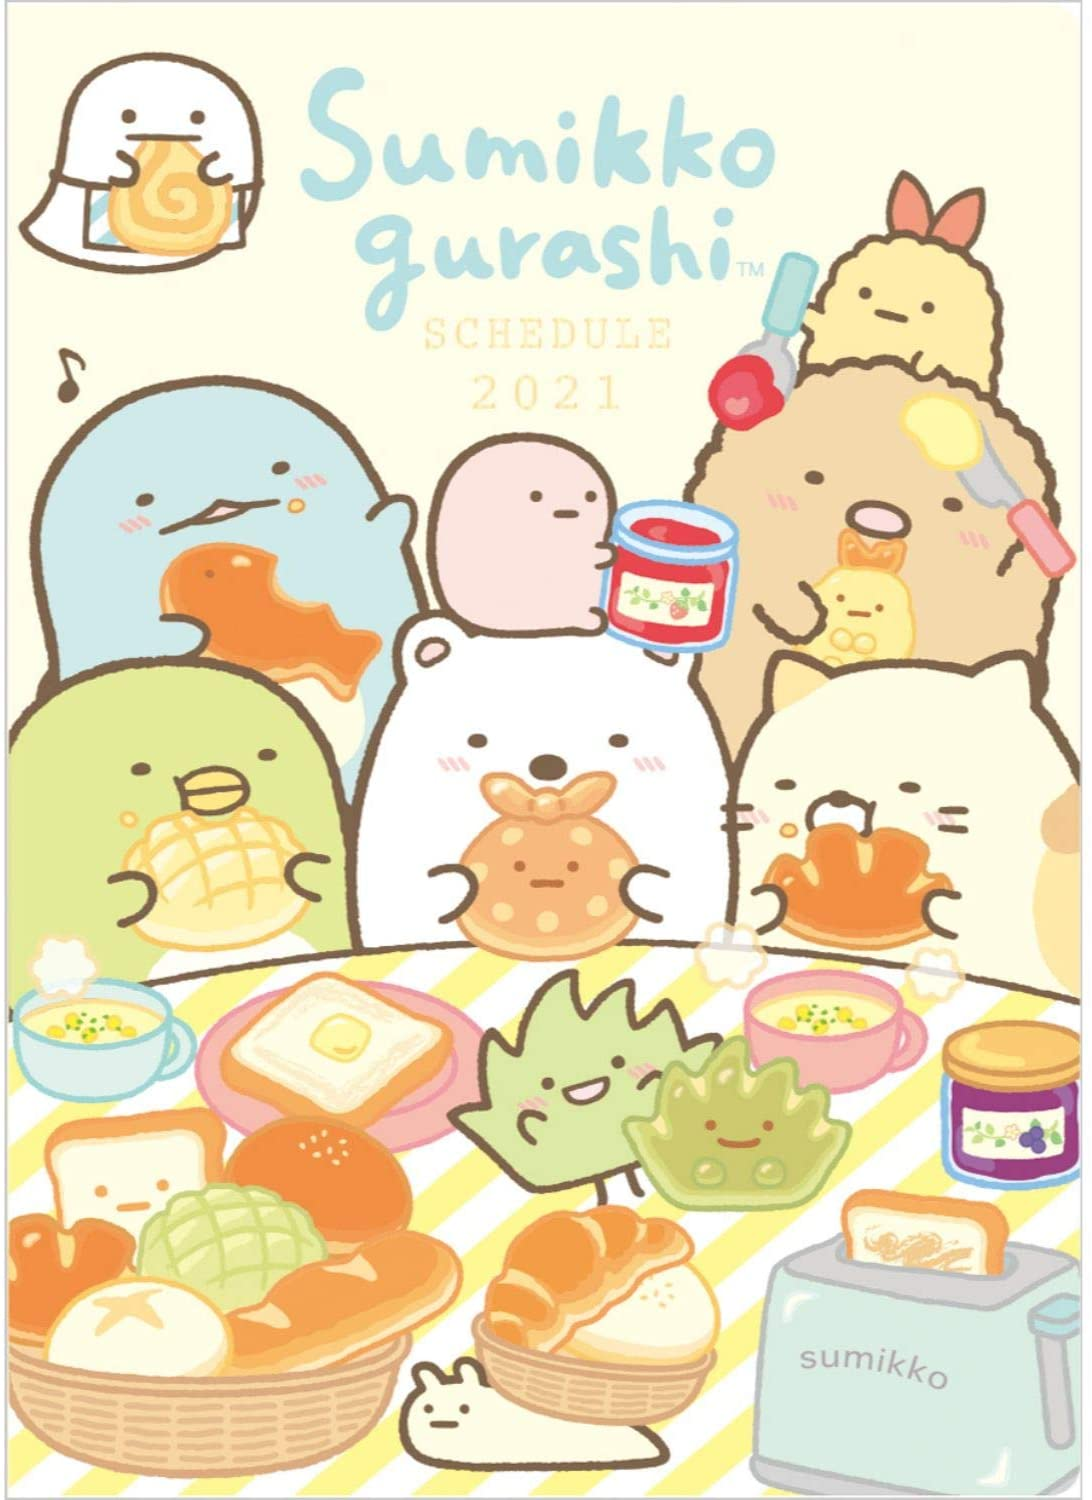 San-X Sumikko Gurashi Planner Diary Book 2021 (Japan) Wide Monthly ME66919 [Size] 155x107mm